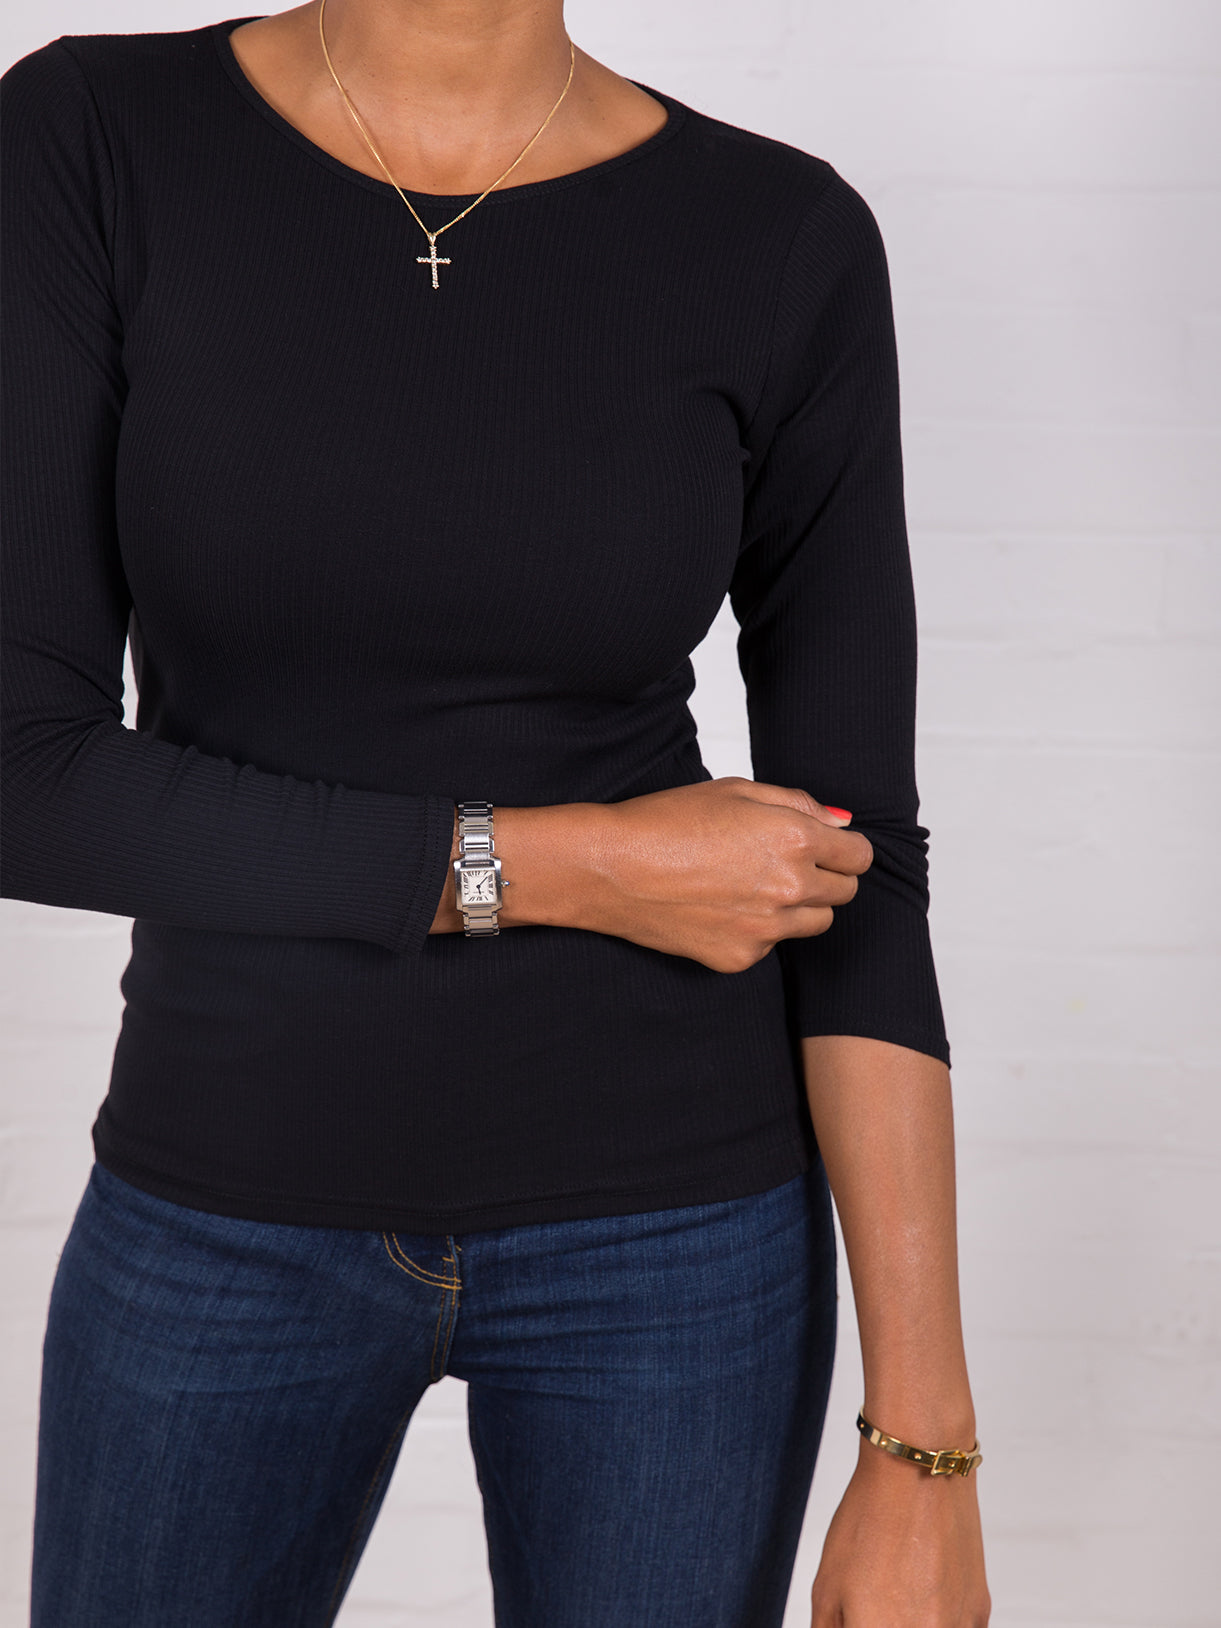 Women's Long Sleeve Ribbed Tee Black